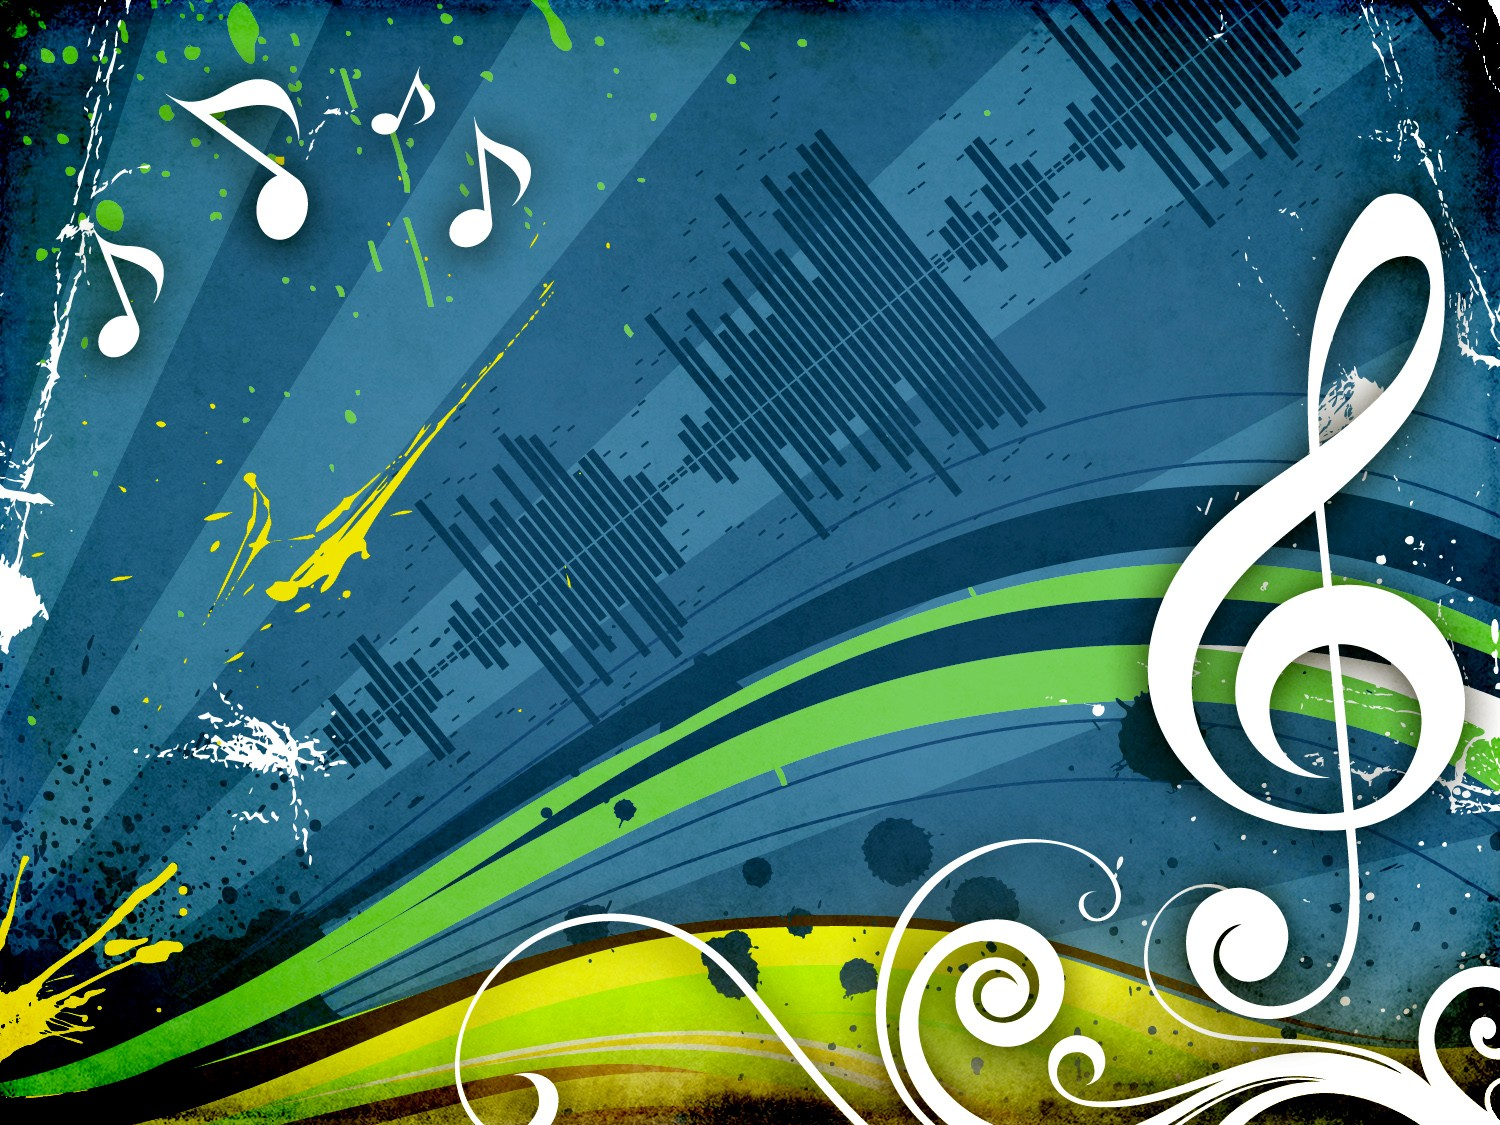 worship backgrounds quotes church quotesgram background1